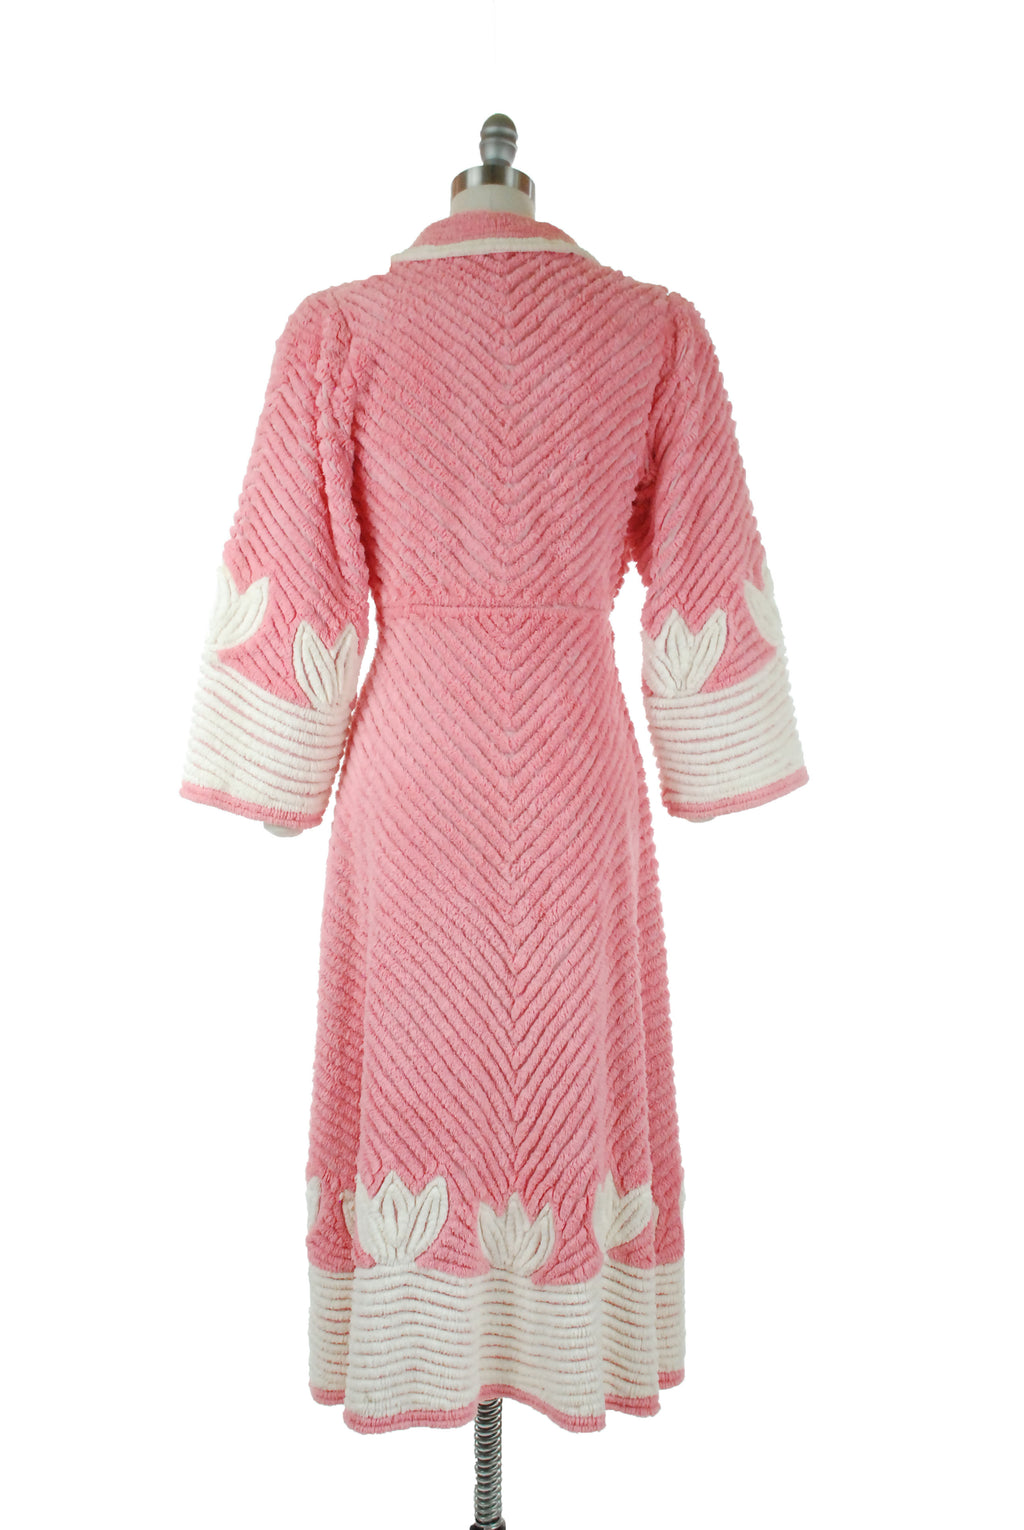 Vintage 1940s Decadent Pink Chenille Wrap Style Dressing Gown with White Accents